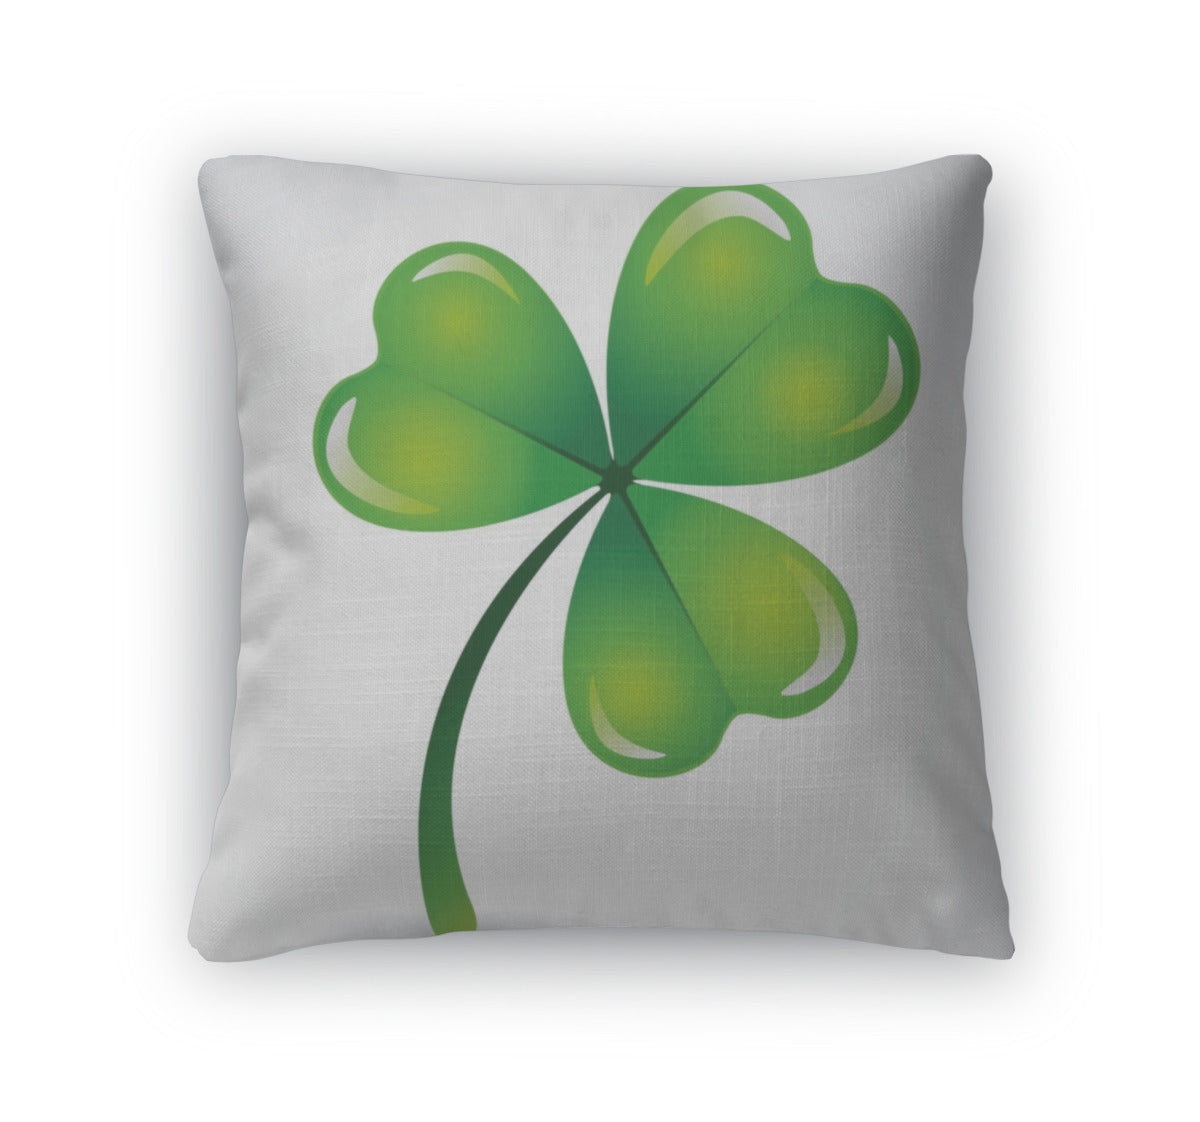 Throw Pillow, Saint Patricks Day - fashionbests